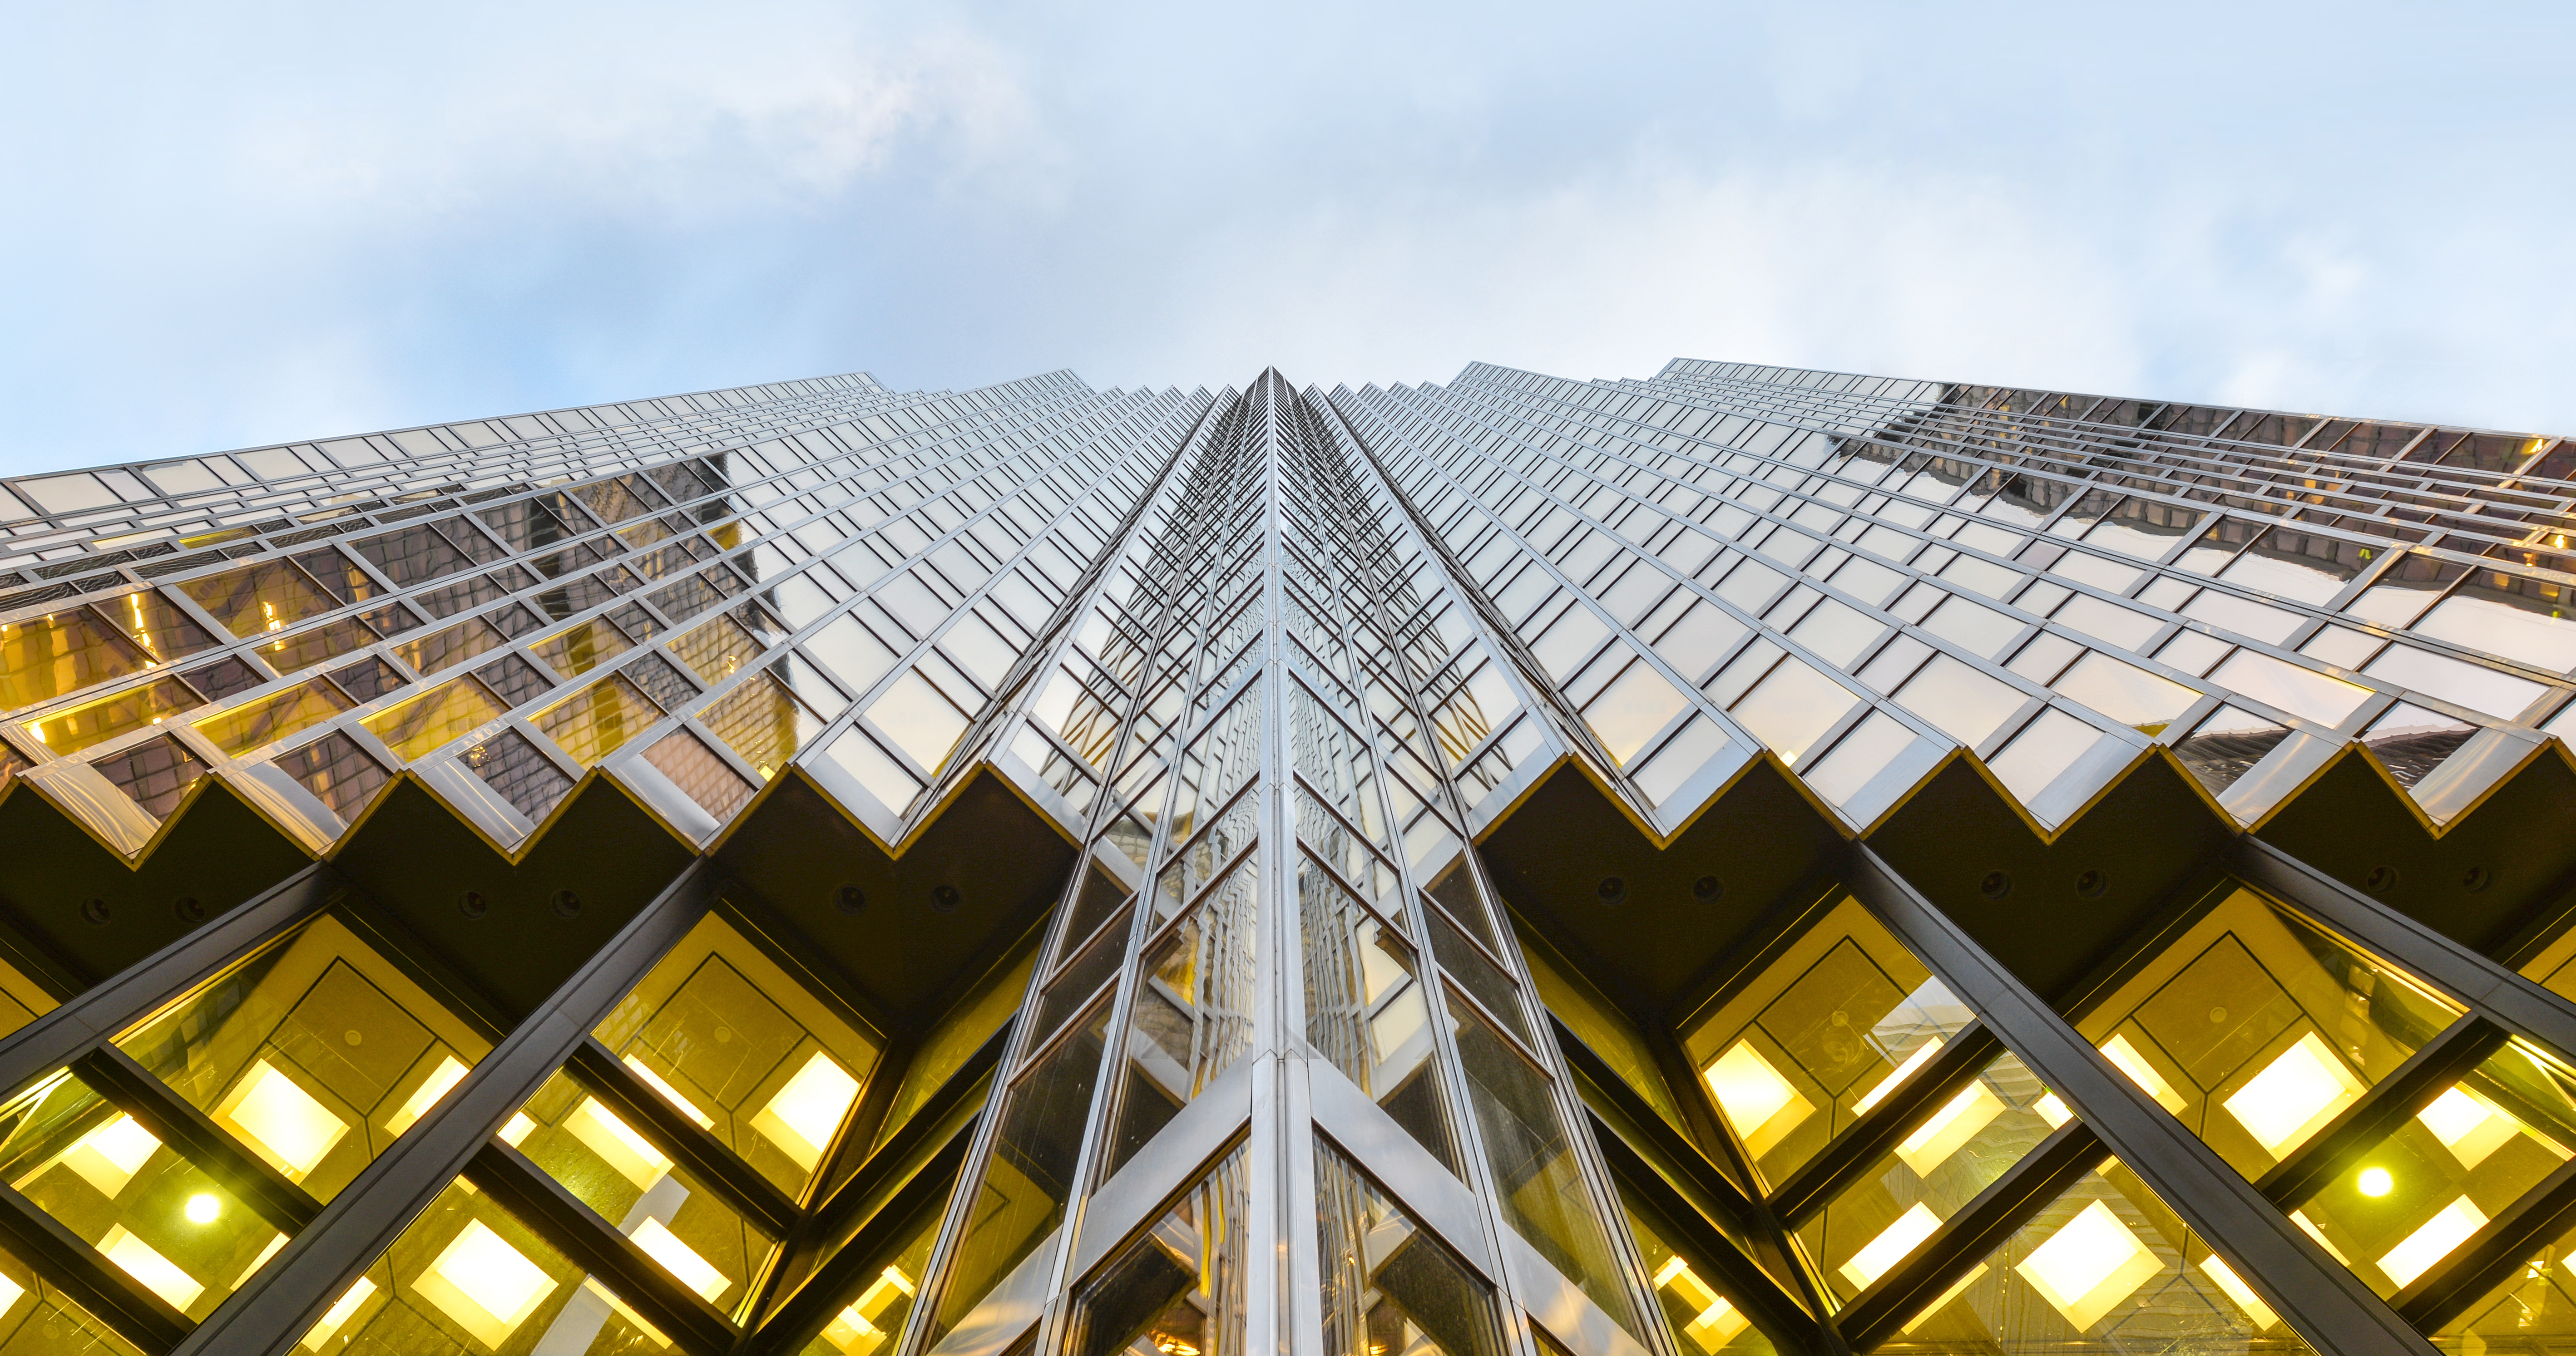 An upward view of RBC Tower